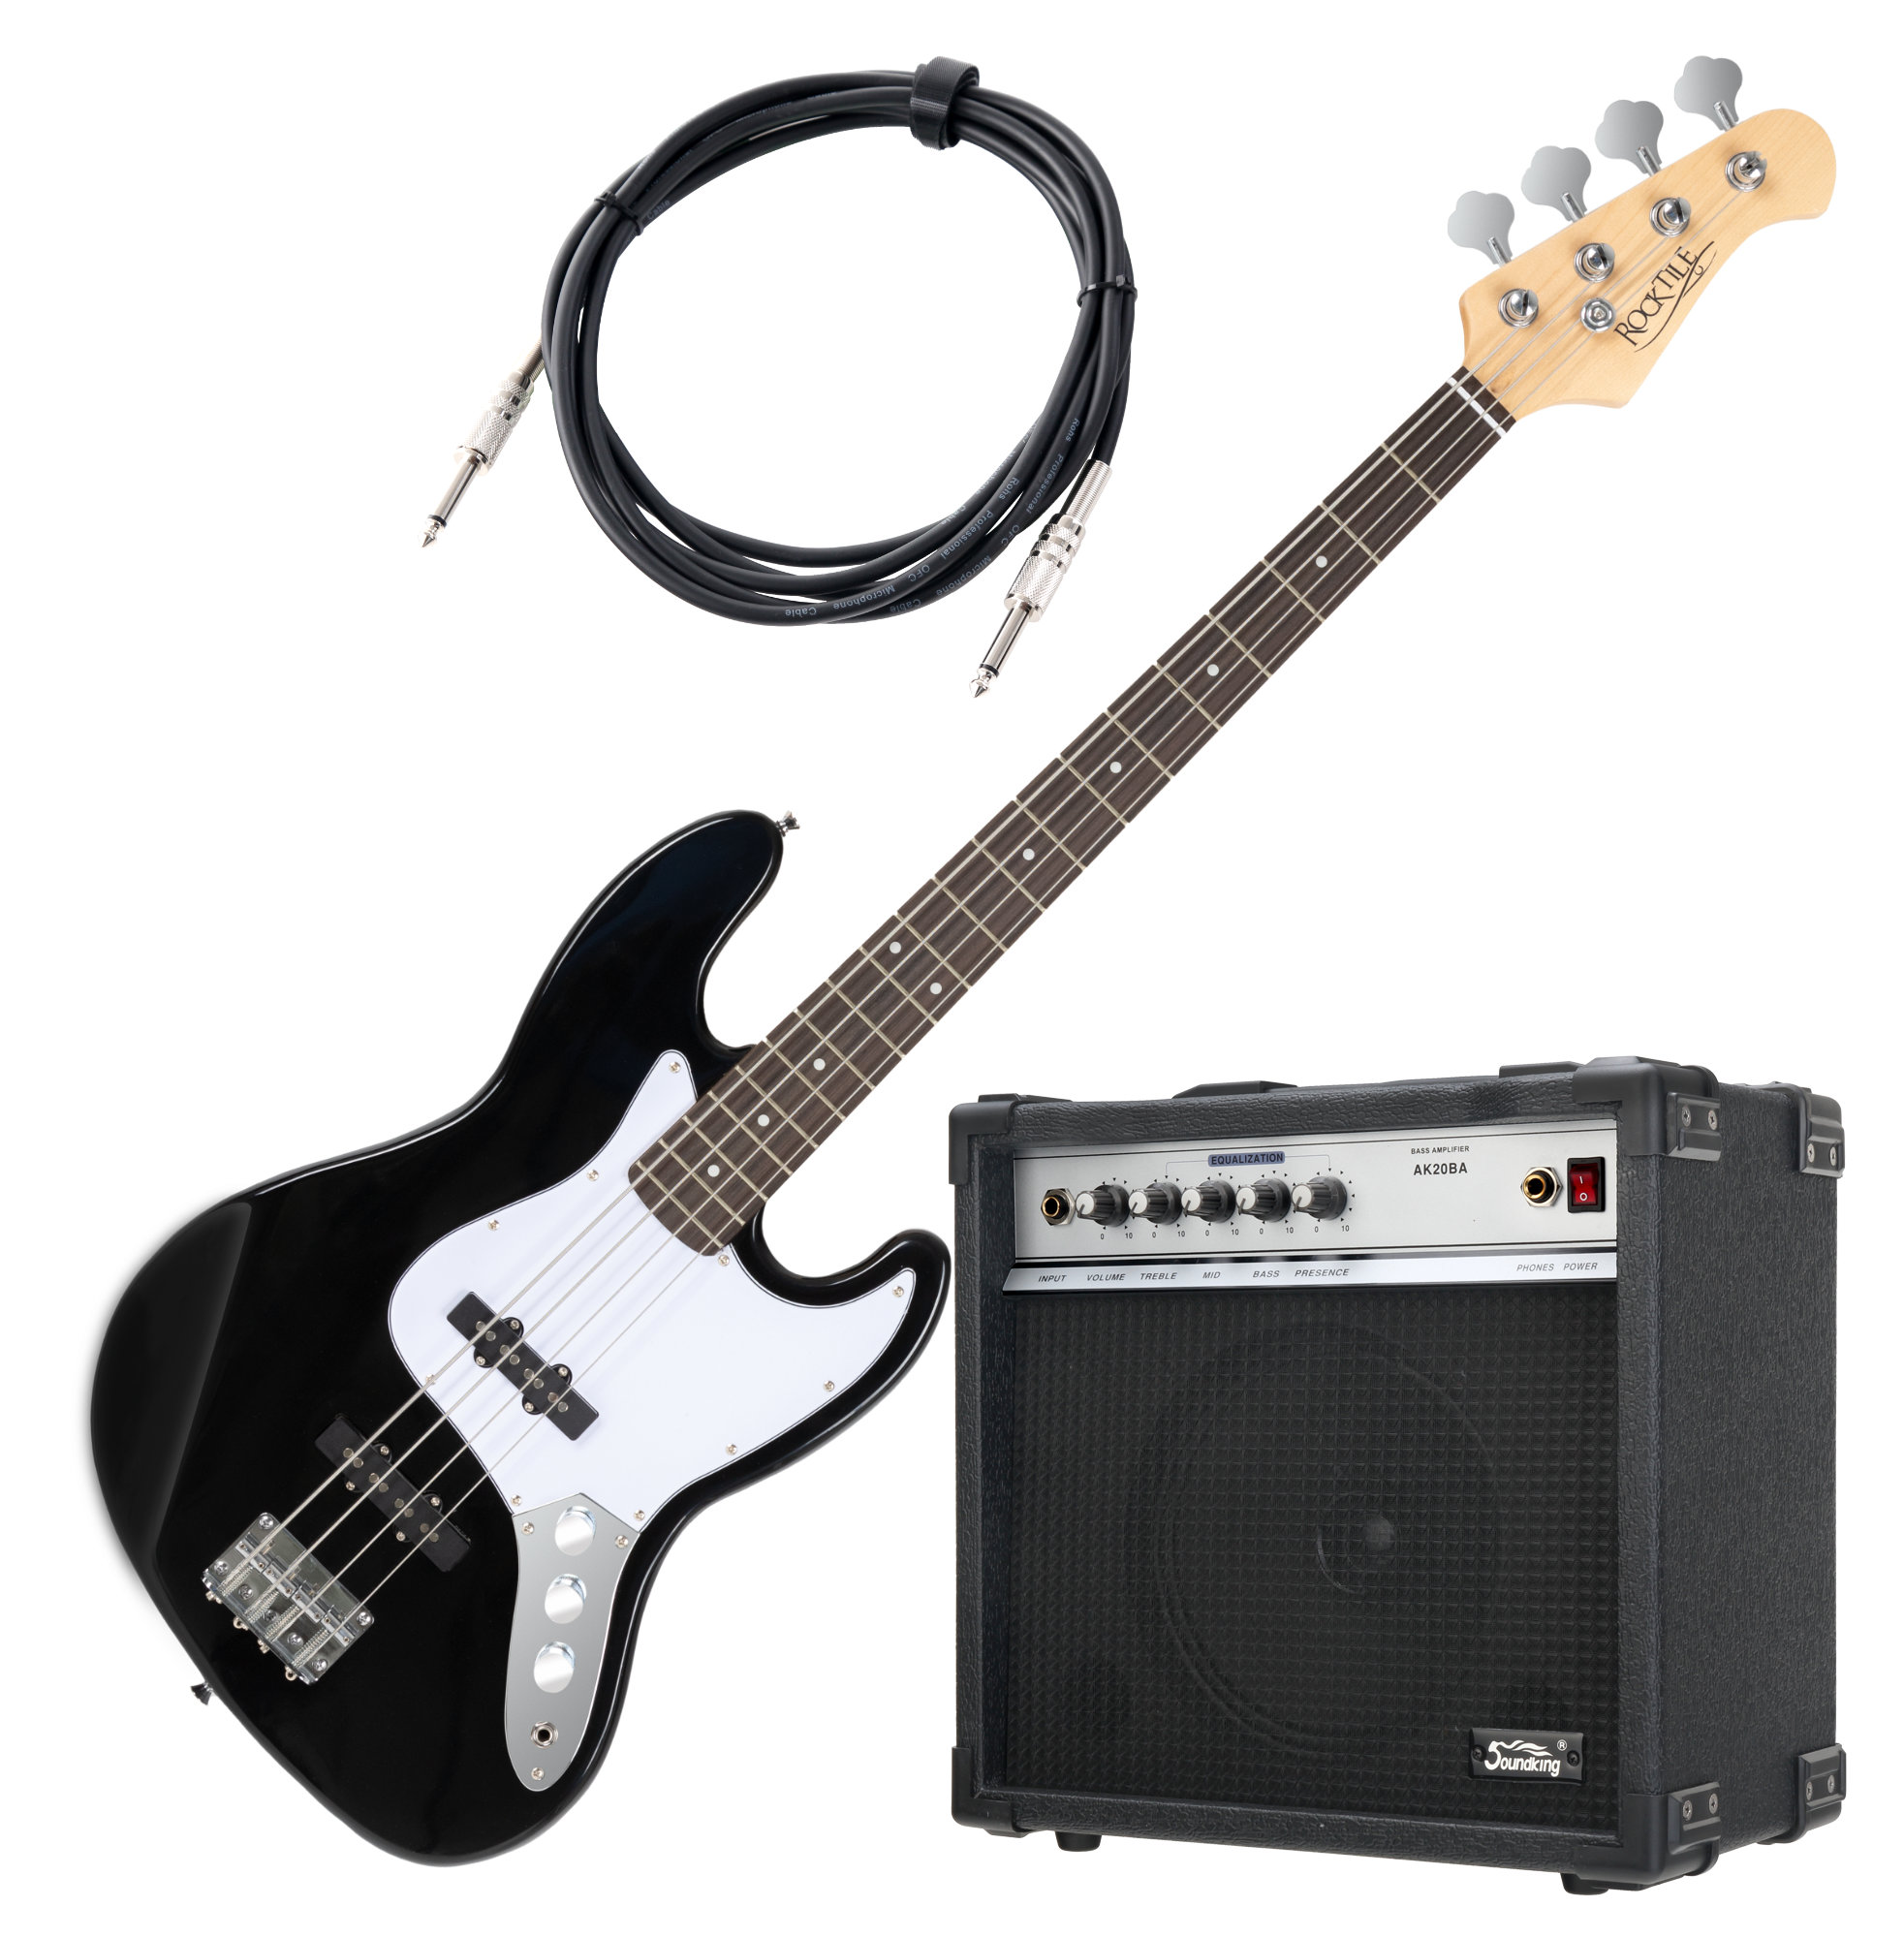 Rocktile Fatboy II E Bass Schwarz SET inkl. Soundking Bass Amp Kabel